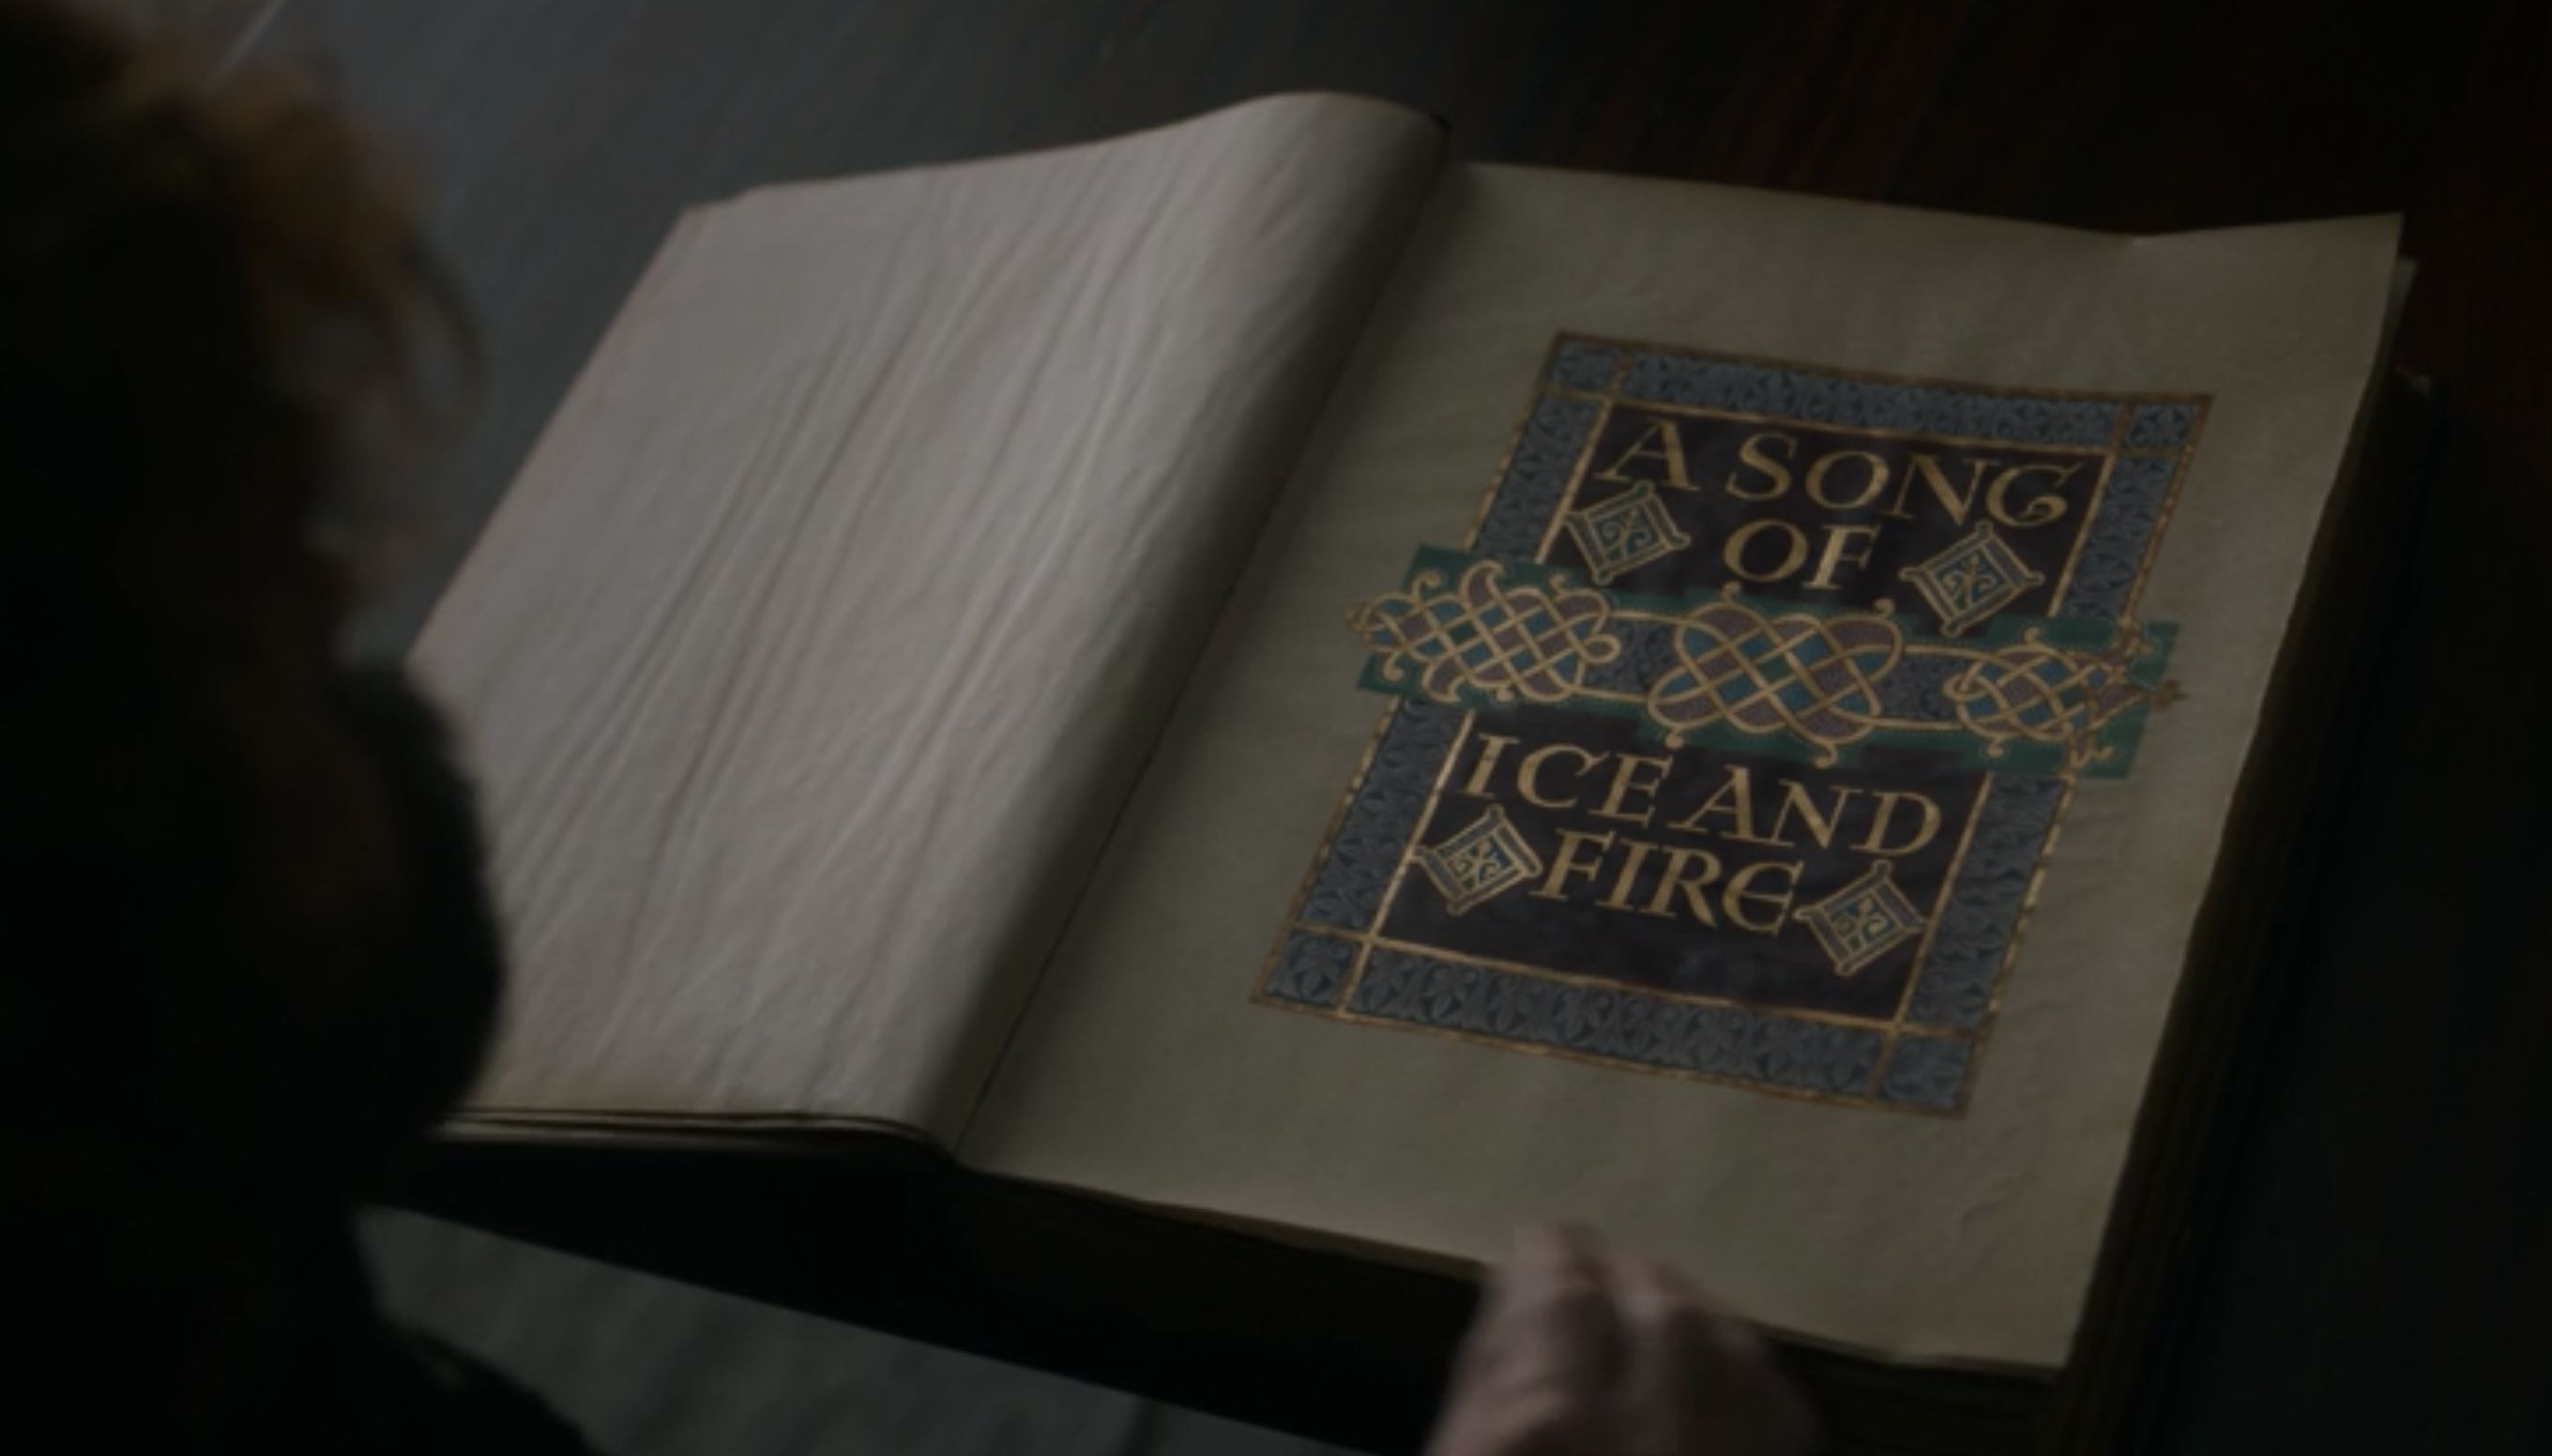 A Song of Ice and Fire isn't even the fifth longest epic fantasy series